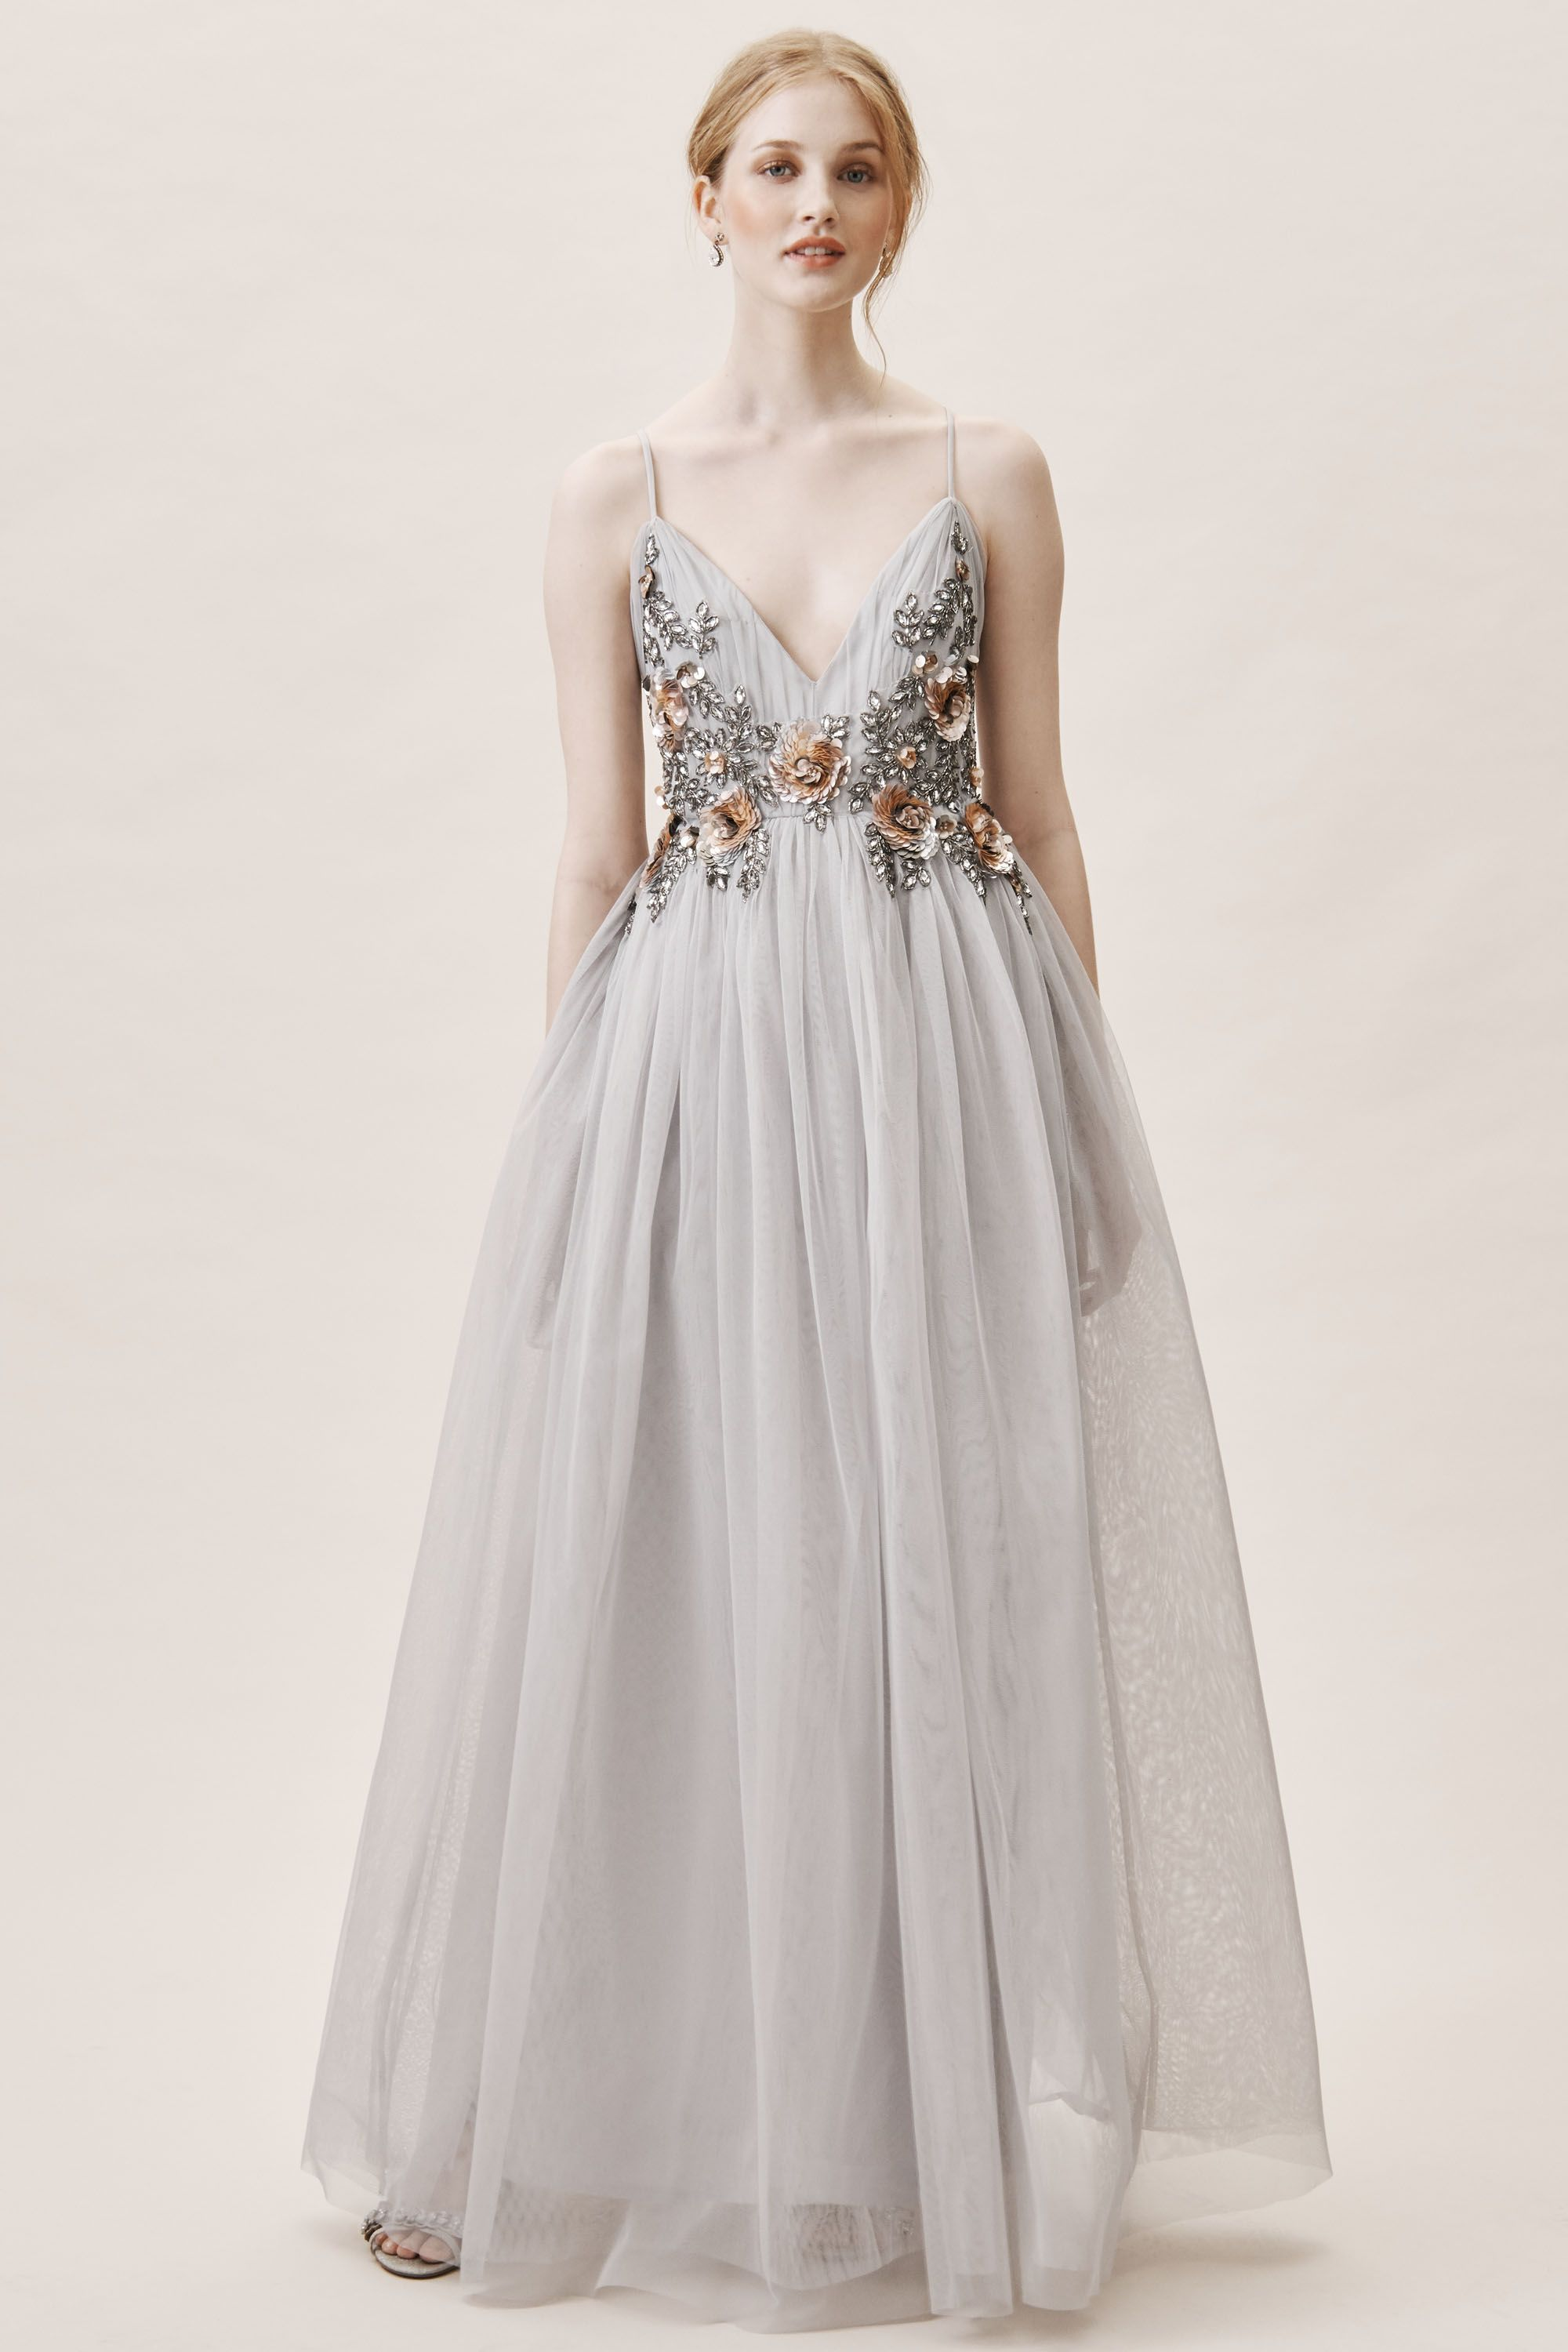 a2cdd2e88e78 Nymph Dress in 2019 | Bridal gown $250-$500 | Formal dresses ...